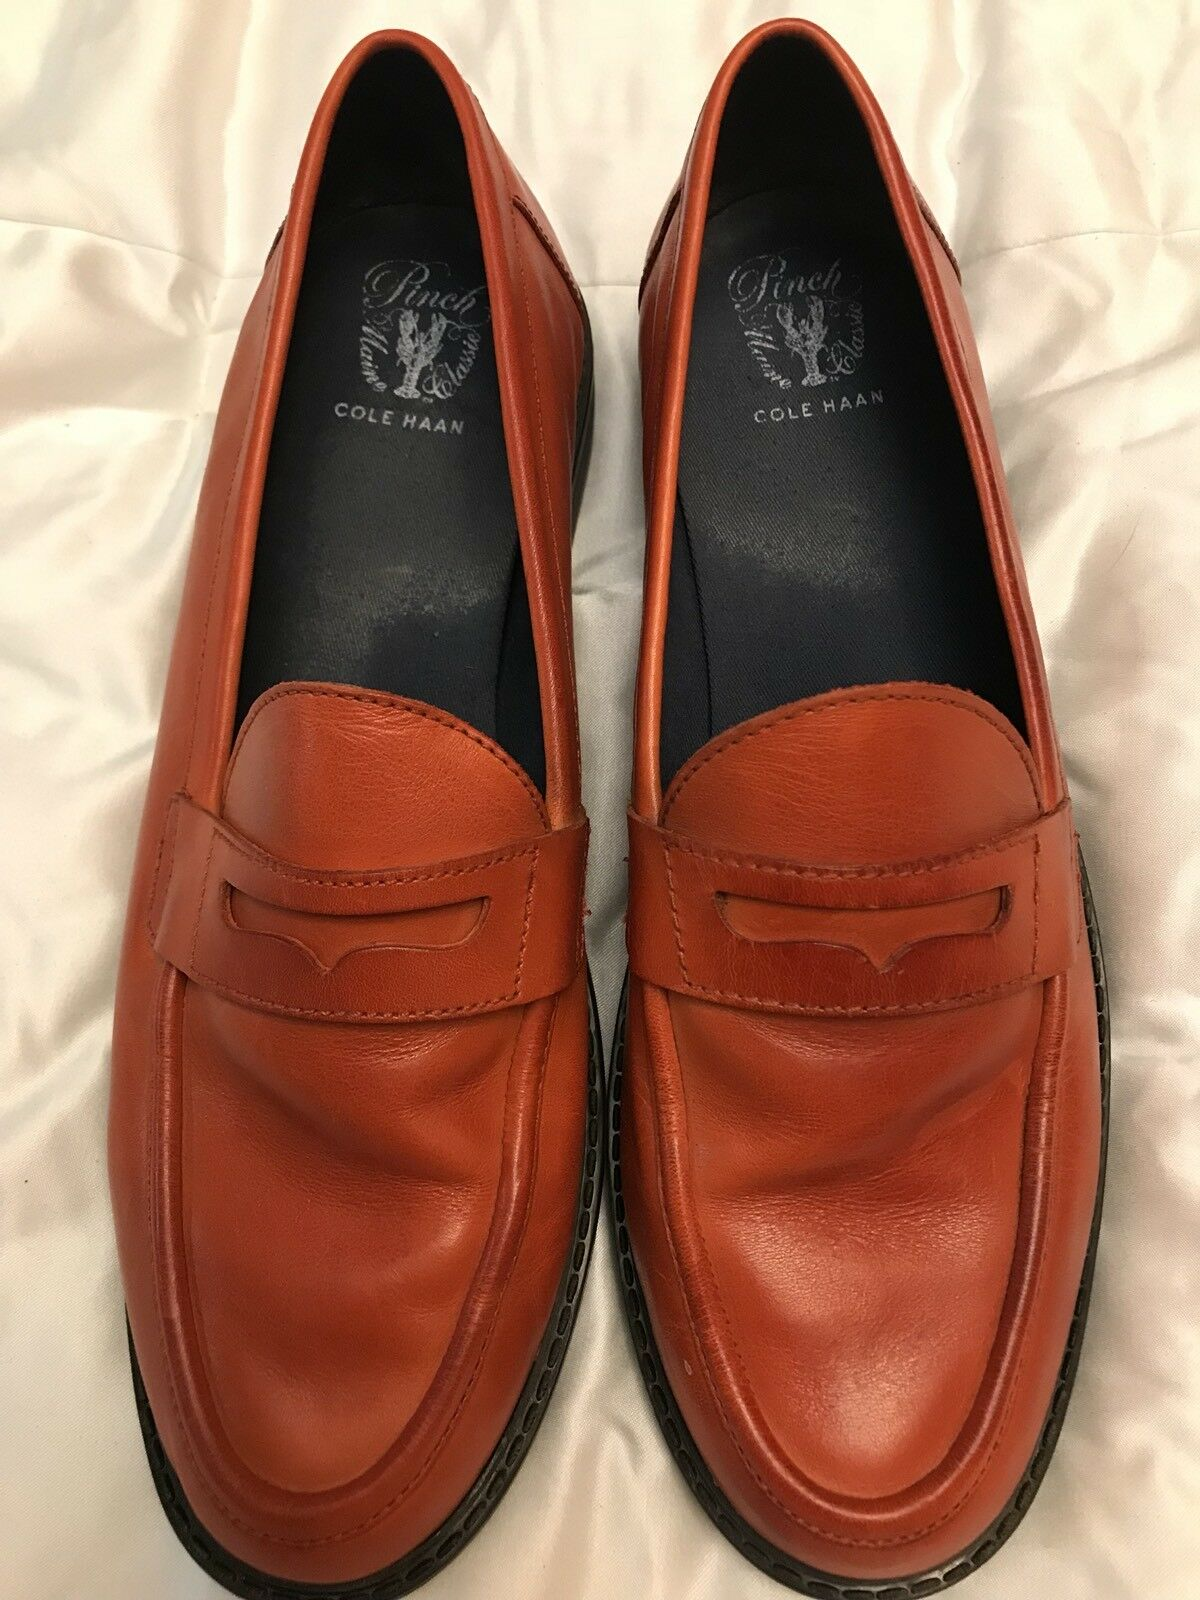 Cole Haan Pinch Marine Classics ROT Penny Loafers Damens's Weekender